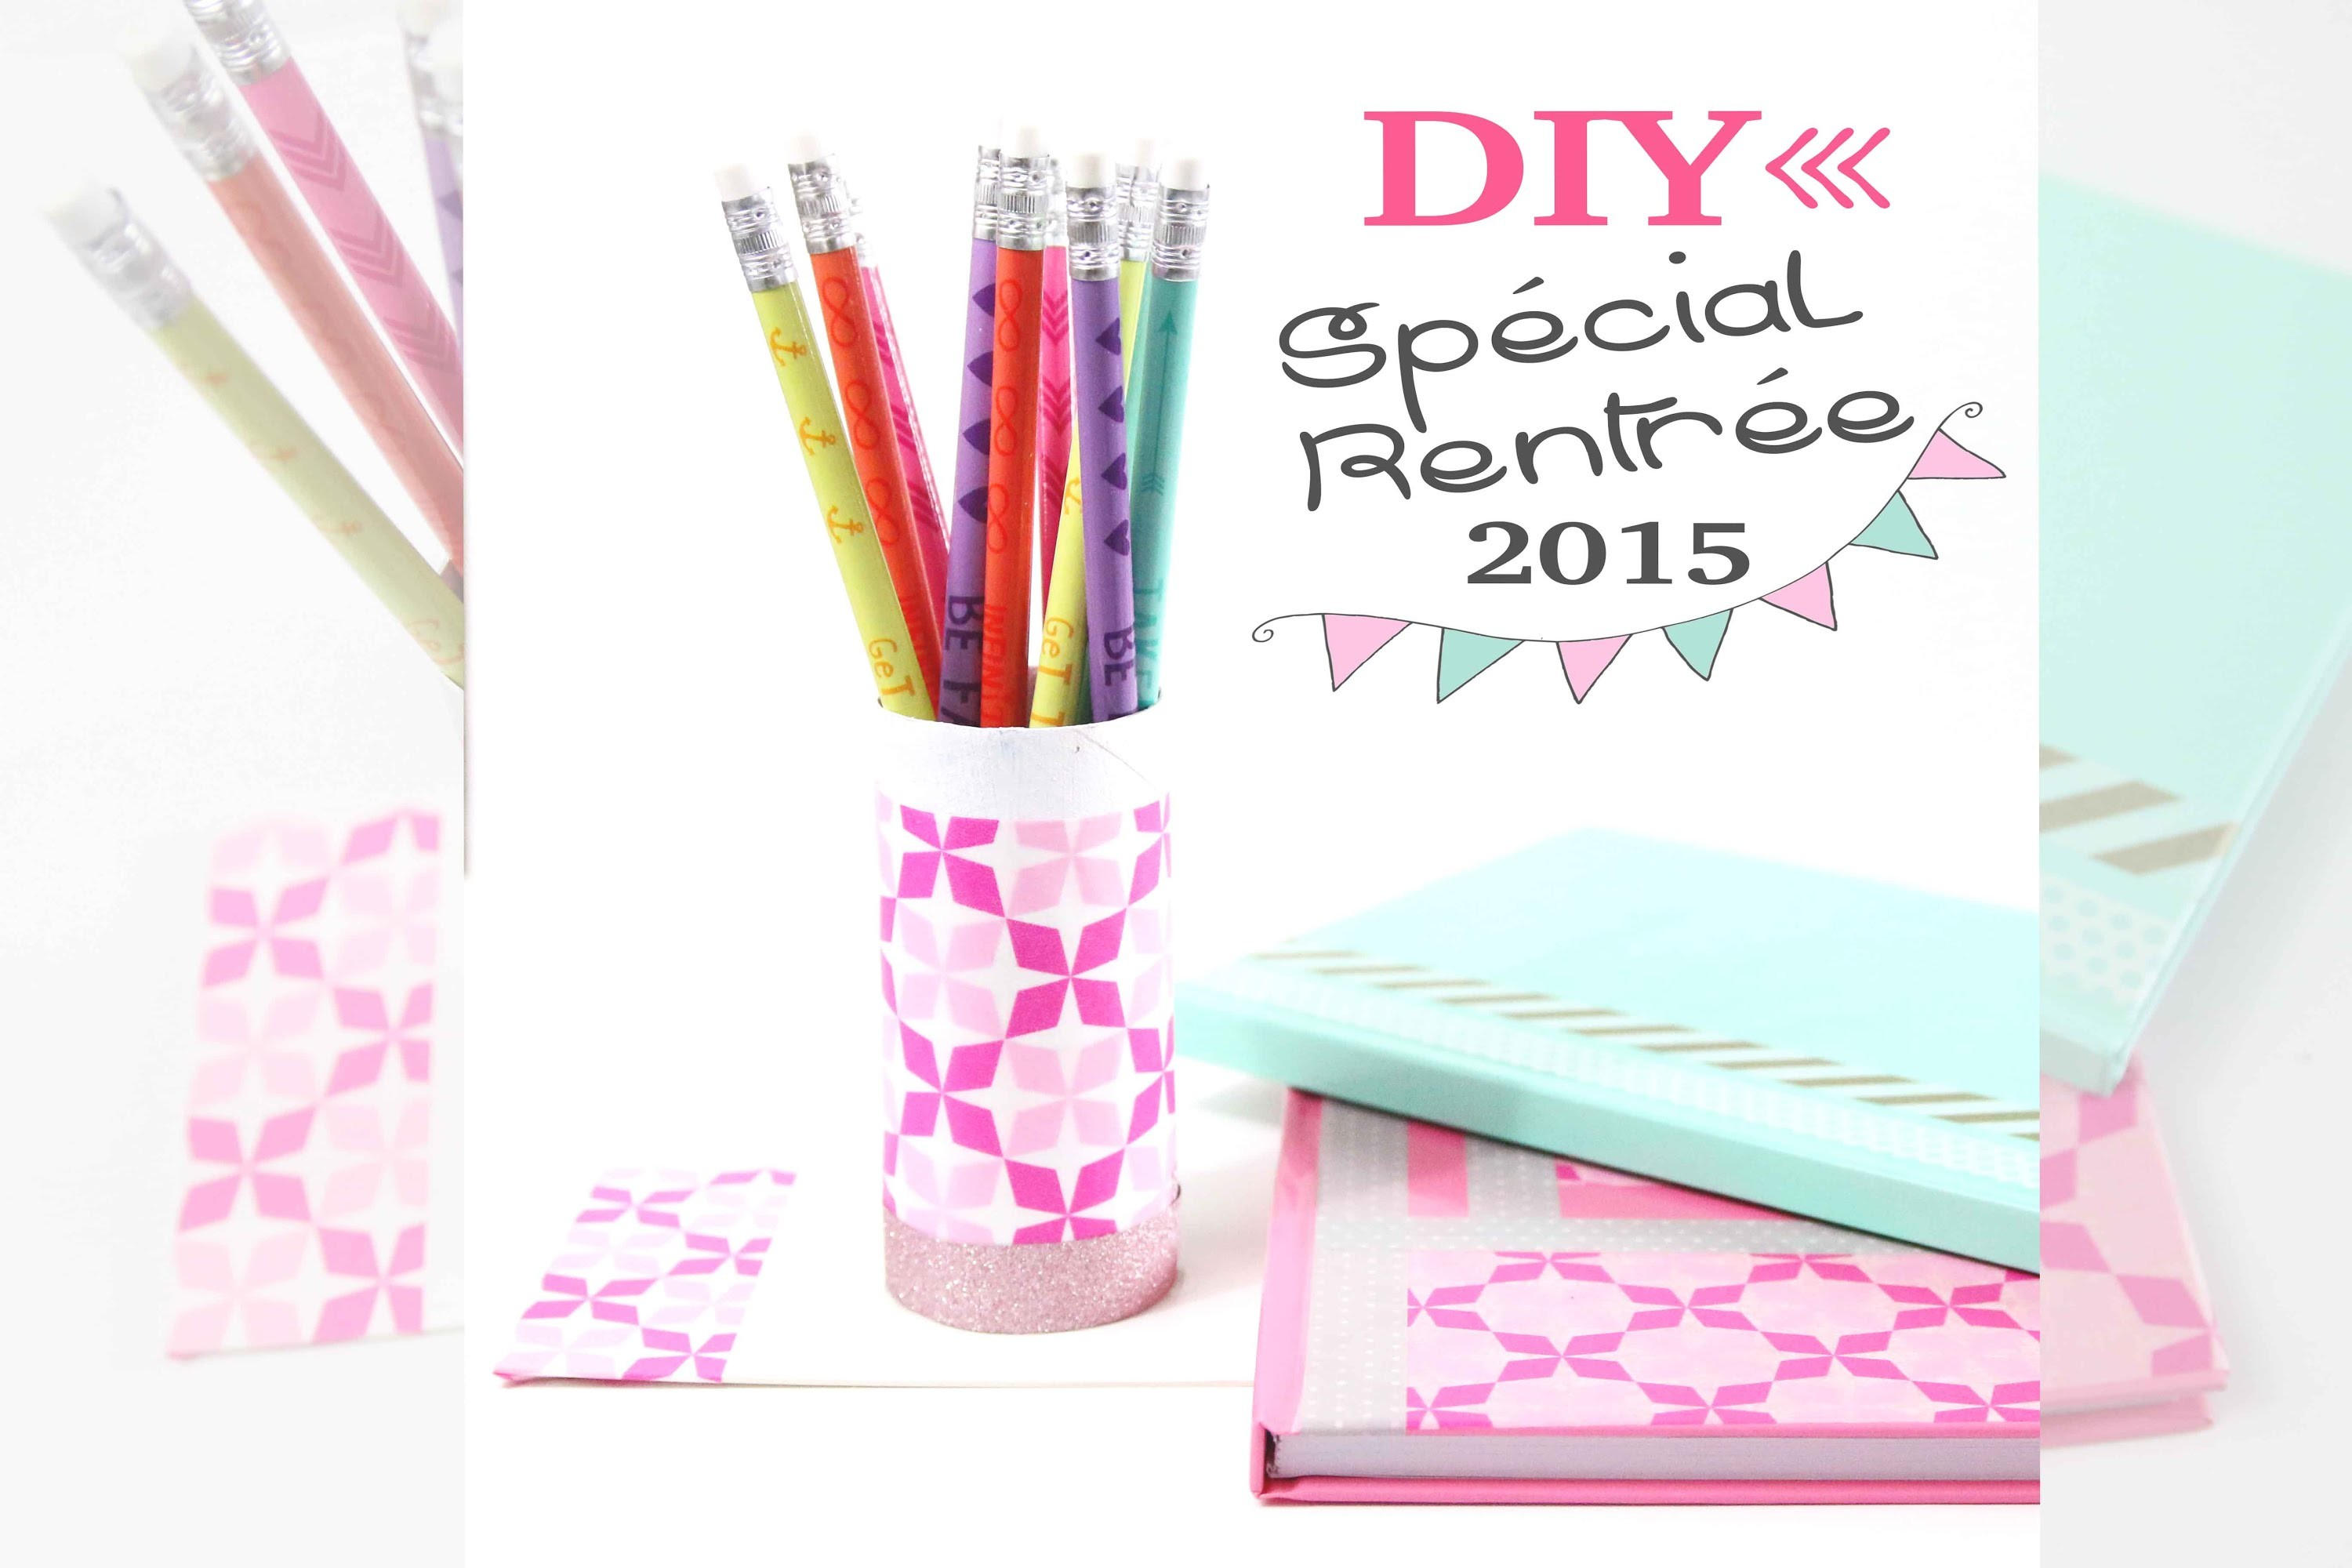 DIY : Back to school.work - Personnaliser son matériel de bureau